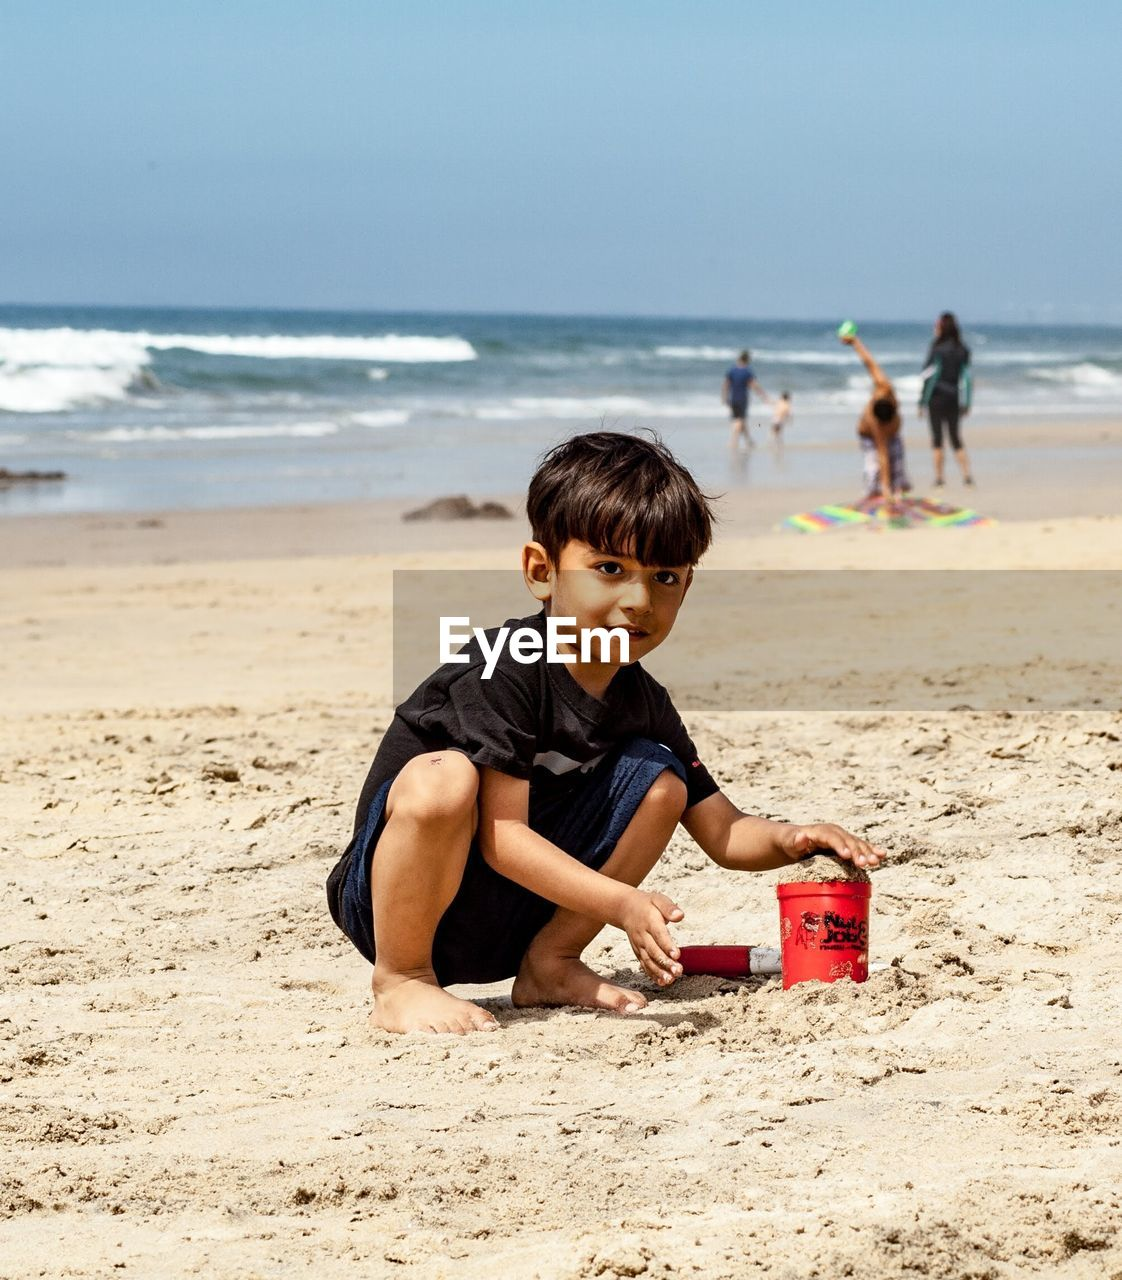 land, beach, child, childhood, sea, boys, men, sand, water, incidental people, males, playing, casual clothing, real people, leisure activity, nature, sky, people, horizon over water, outdoors, innocence